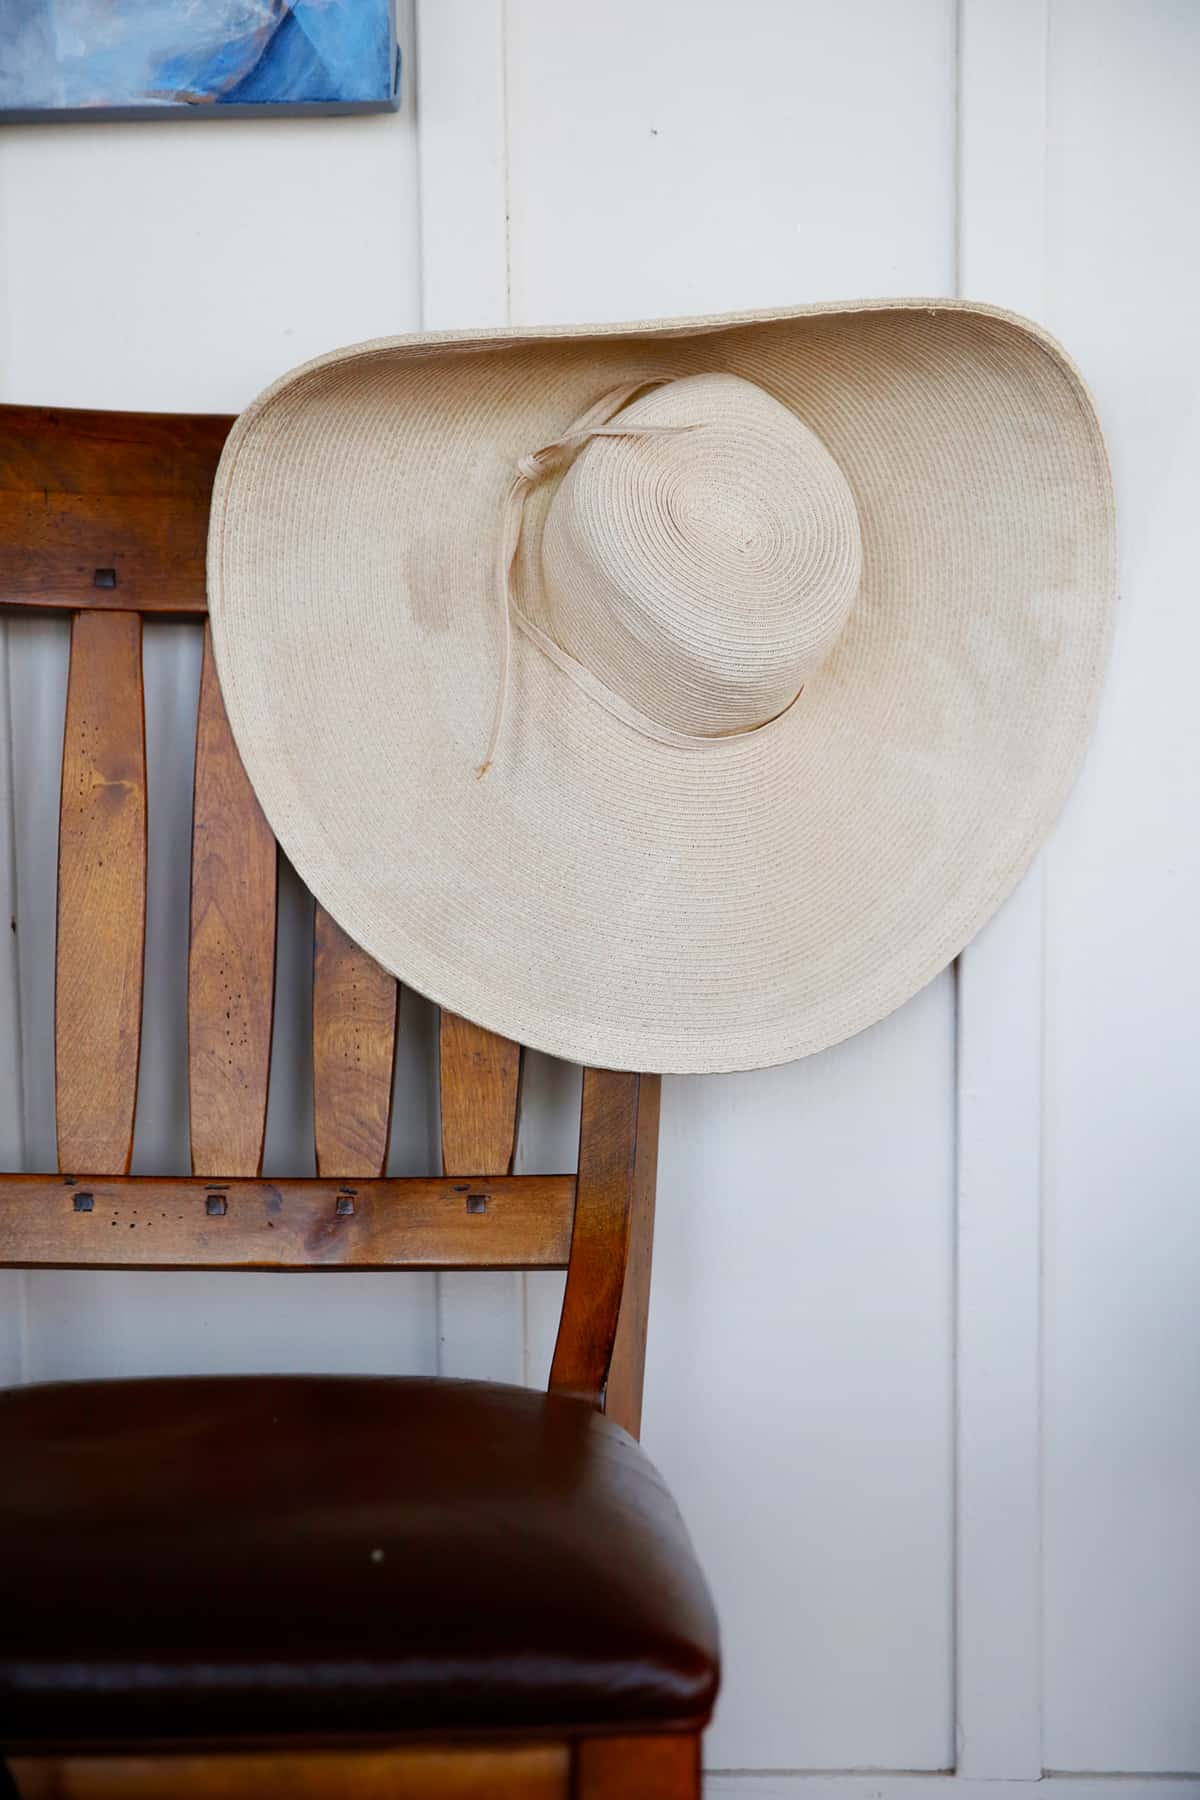 Beach hat on chair in beach house